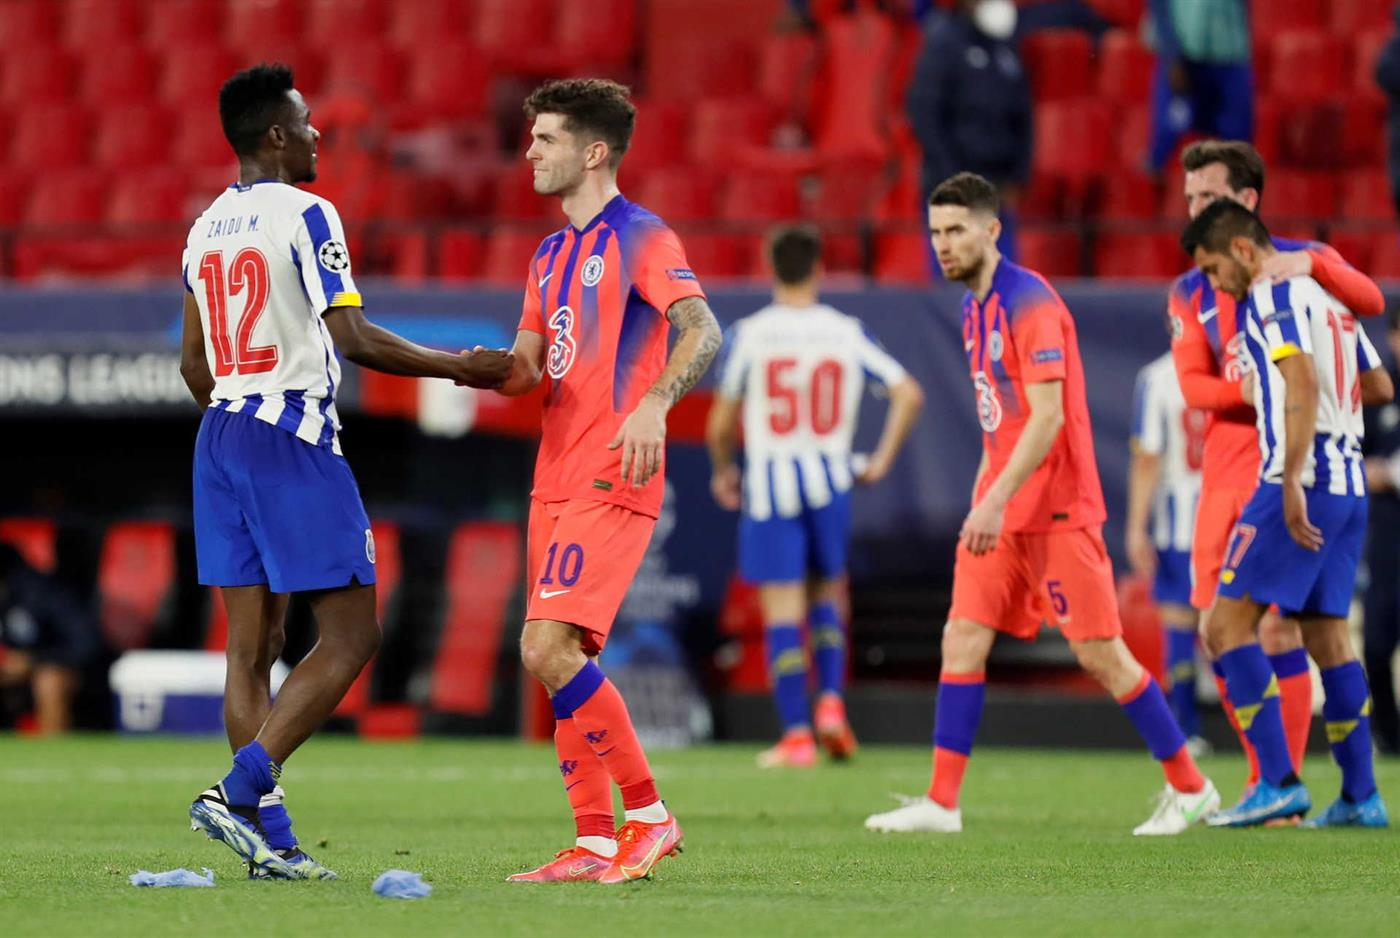 epa09121407 Porto's defender Zaidu Sanusi (L) greets Chelsea's winger Christian Pulisic (2-L) after the